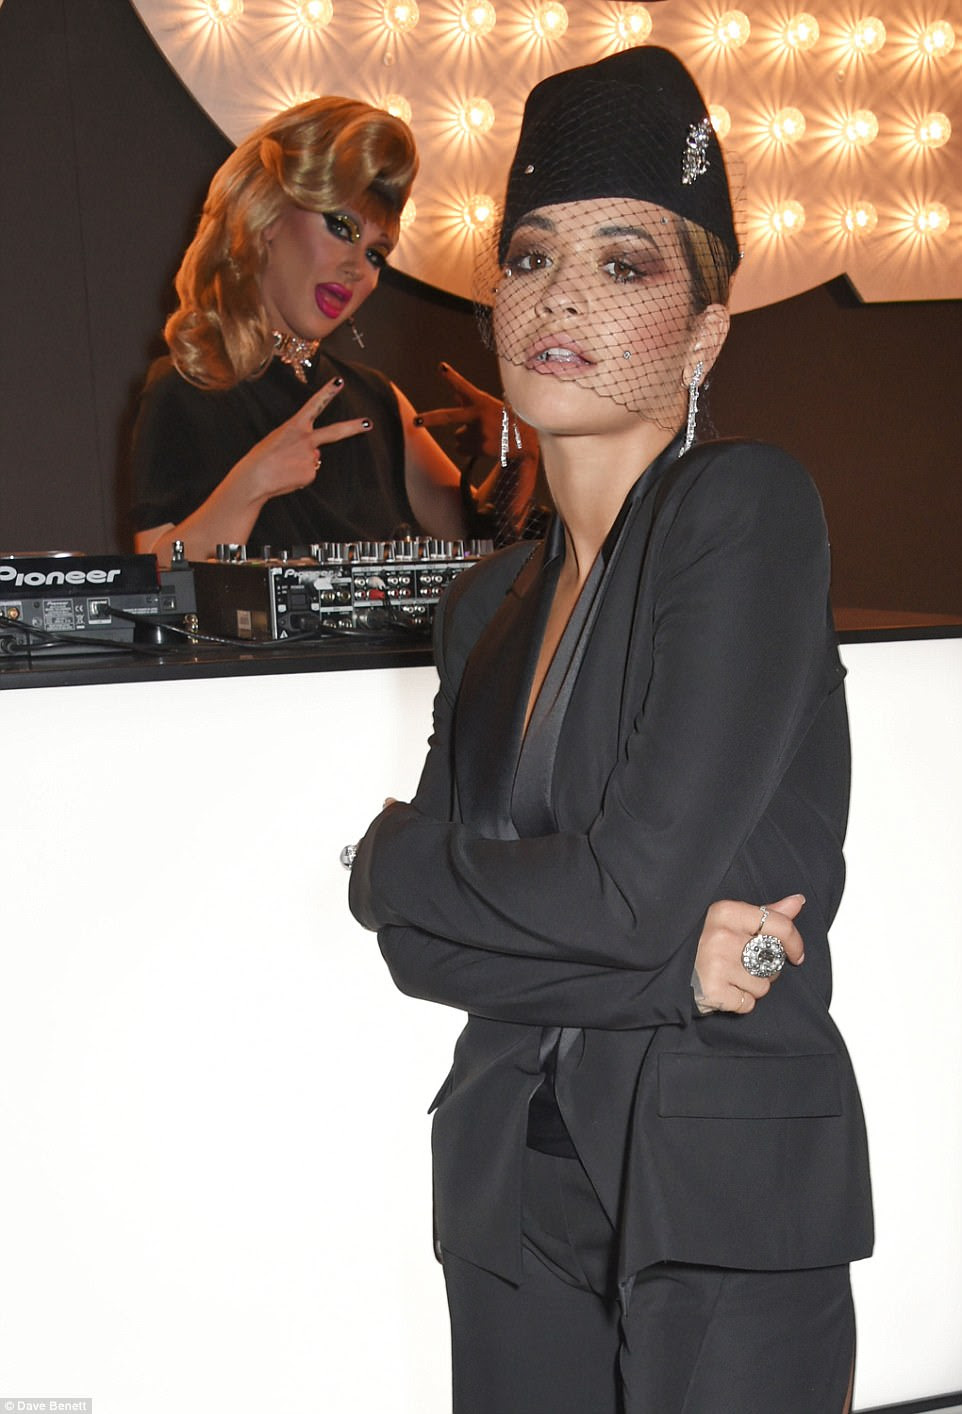 Smouldering: The stunner was posing up a storm while DJ Jodie Harsh photobombed her from the side